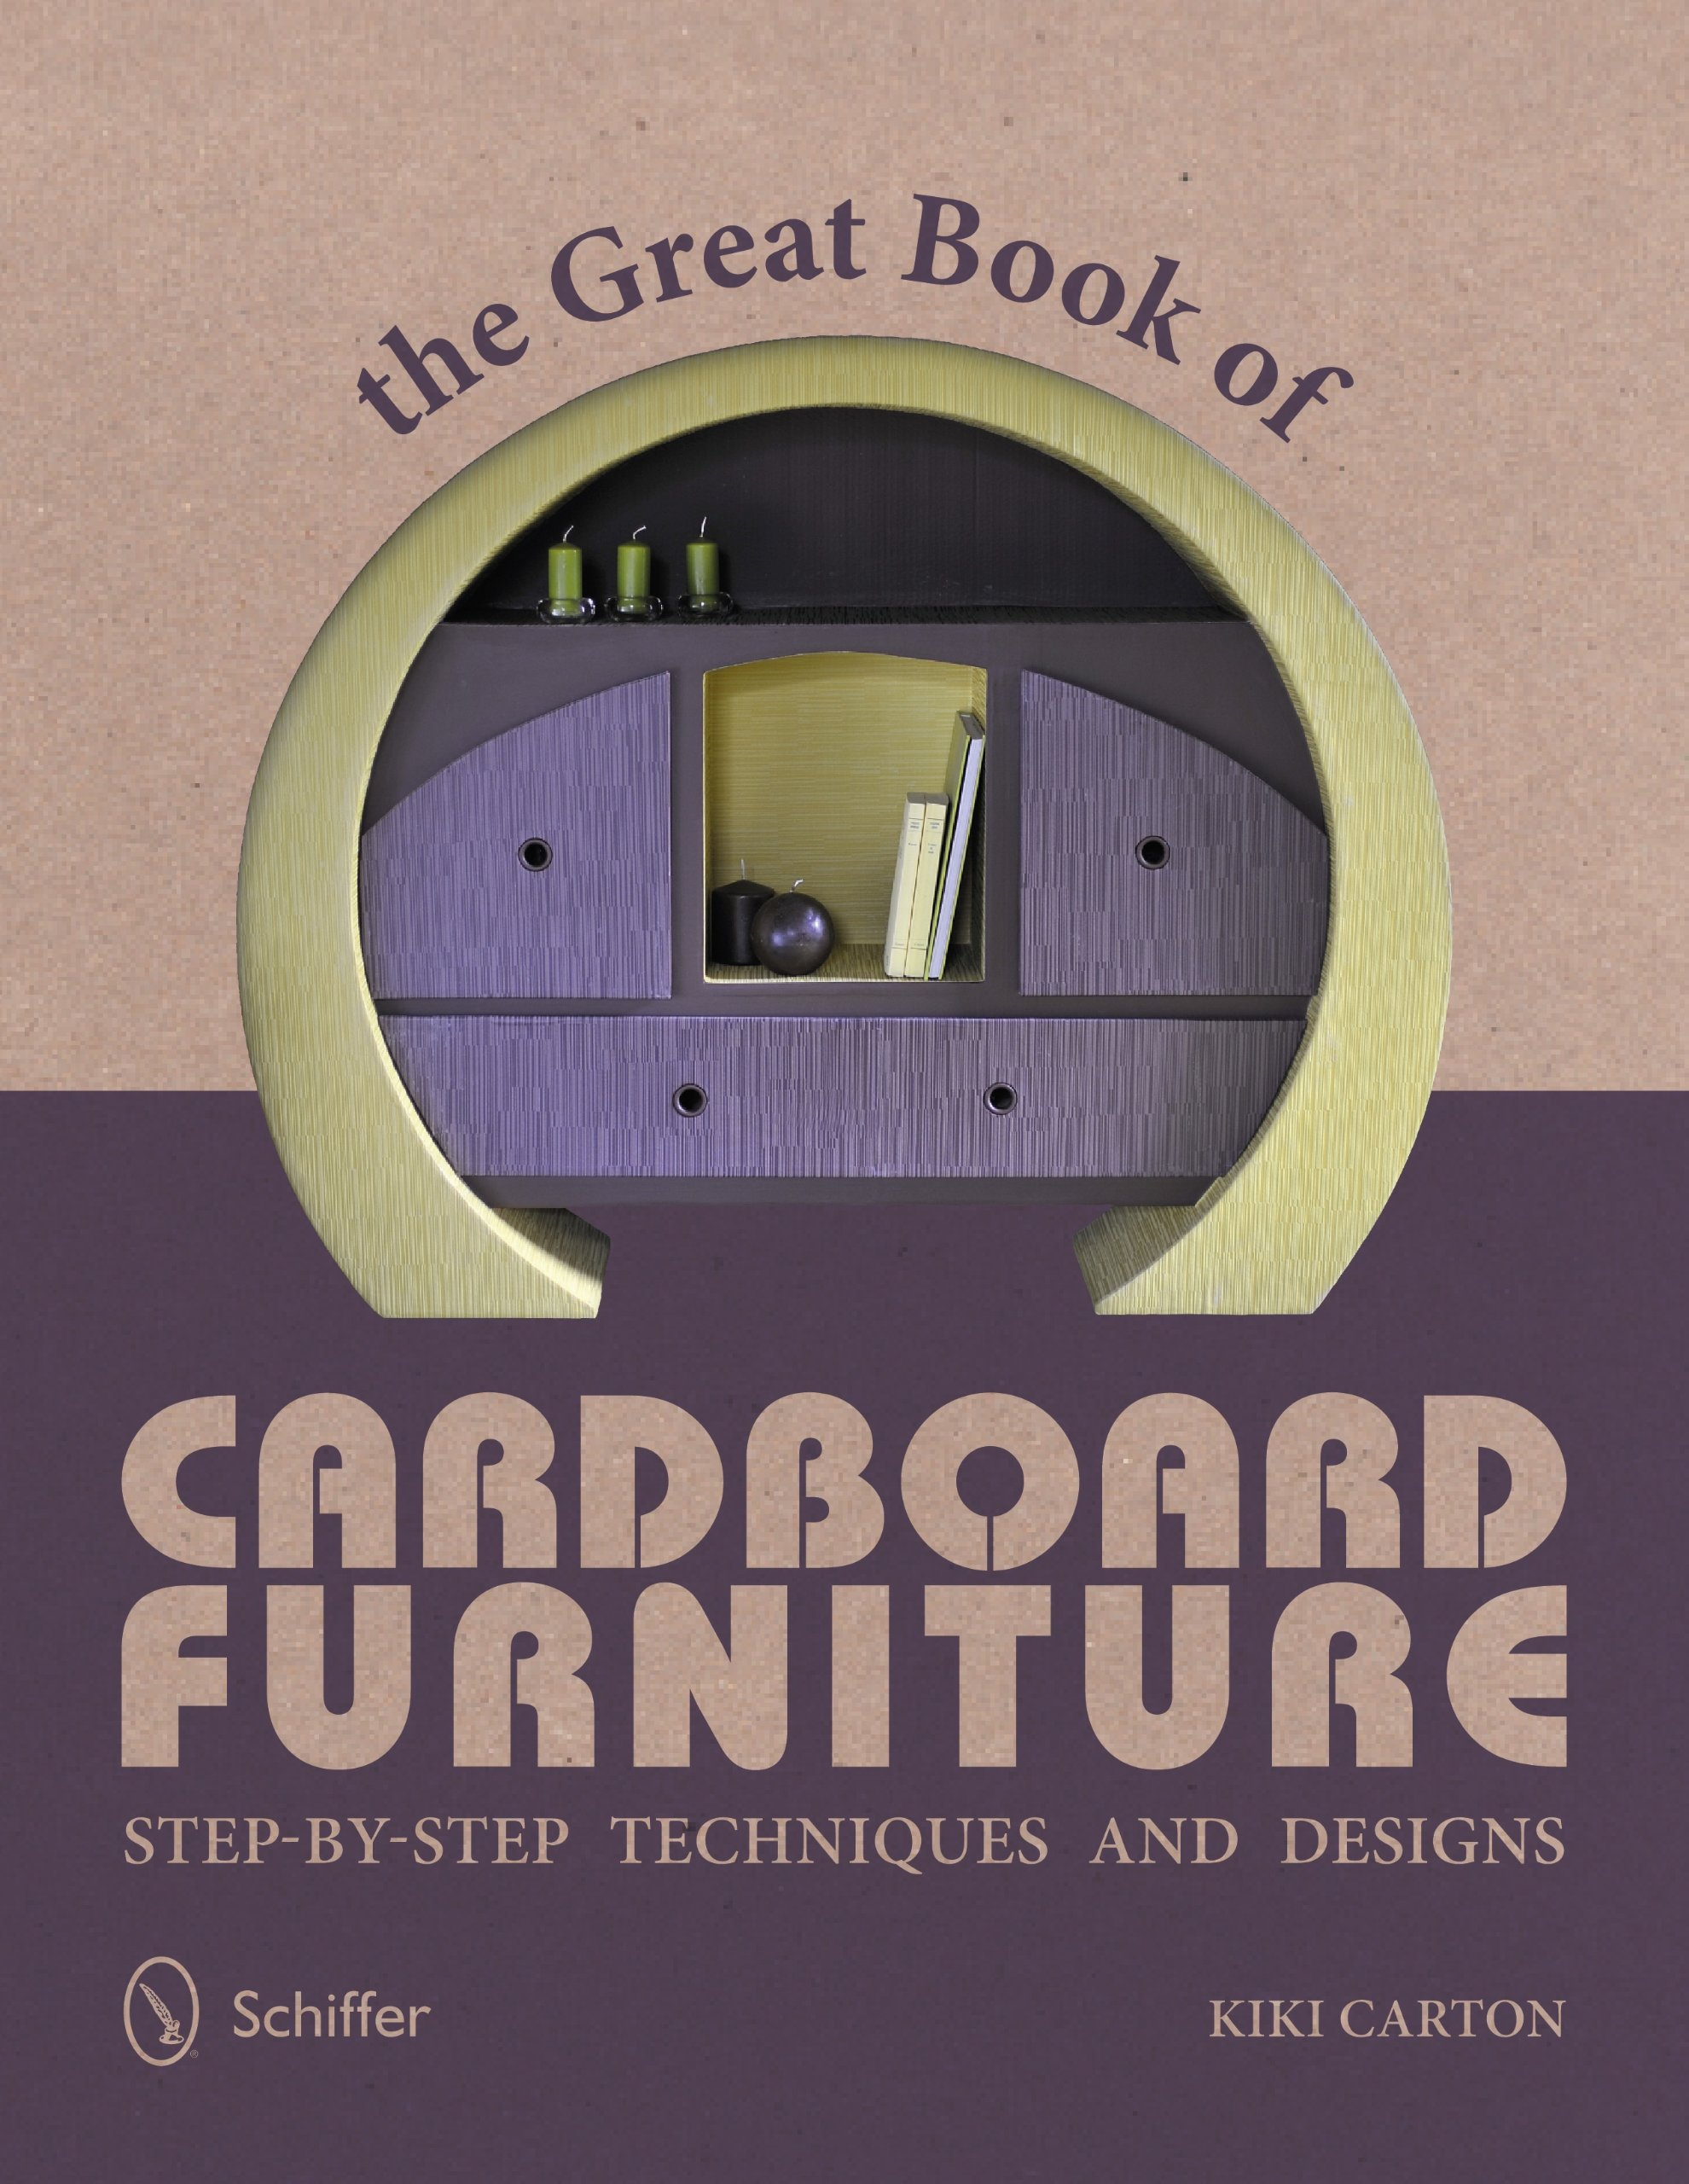 The Great Book of Cardboard Furniture: Step-by-Step Techniques and Designs:  Kiki Carton: 9780764341519: Amazon.com: Books